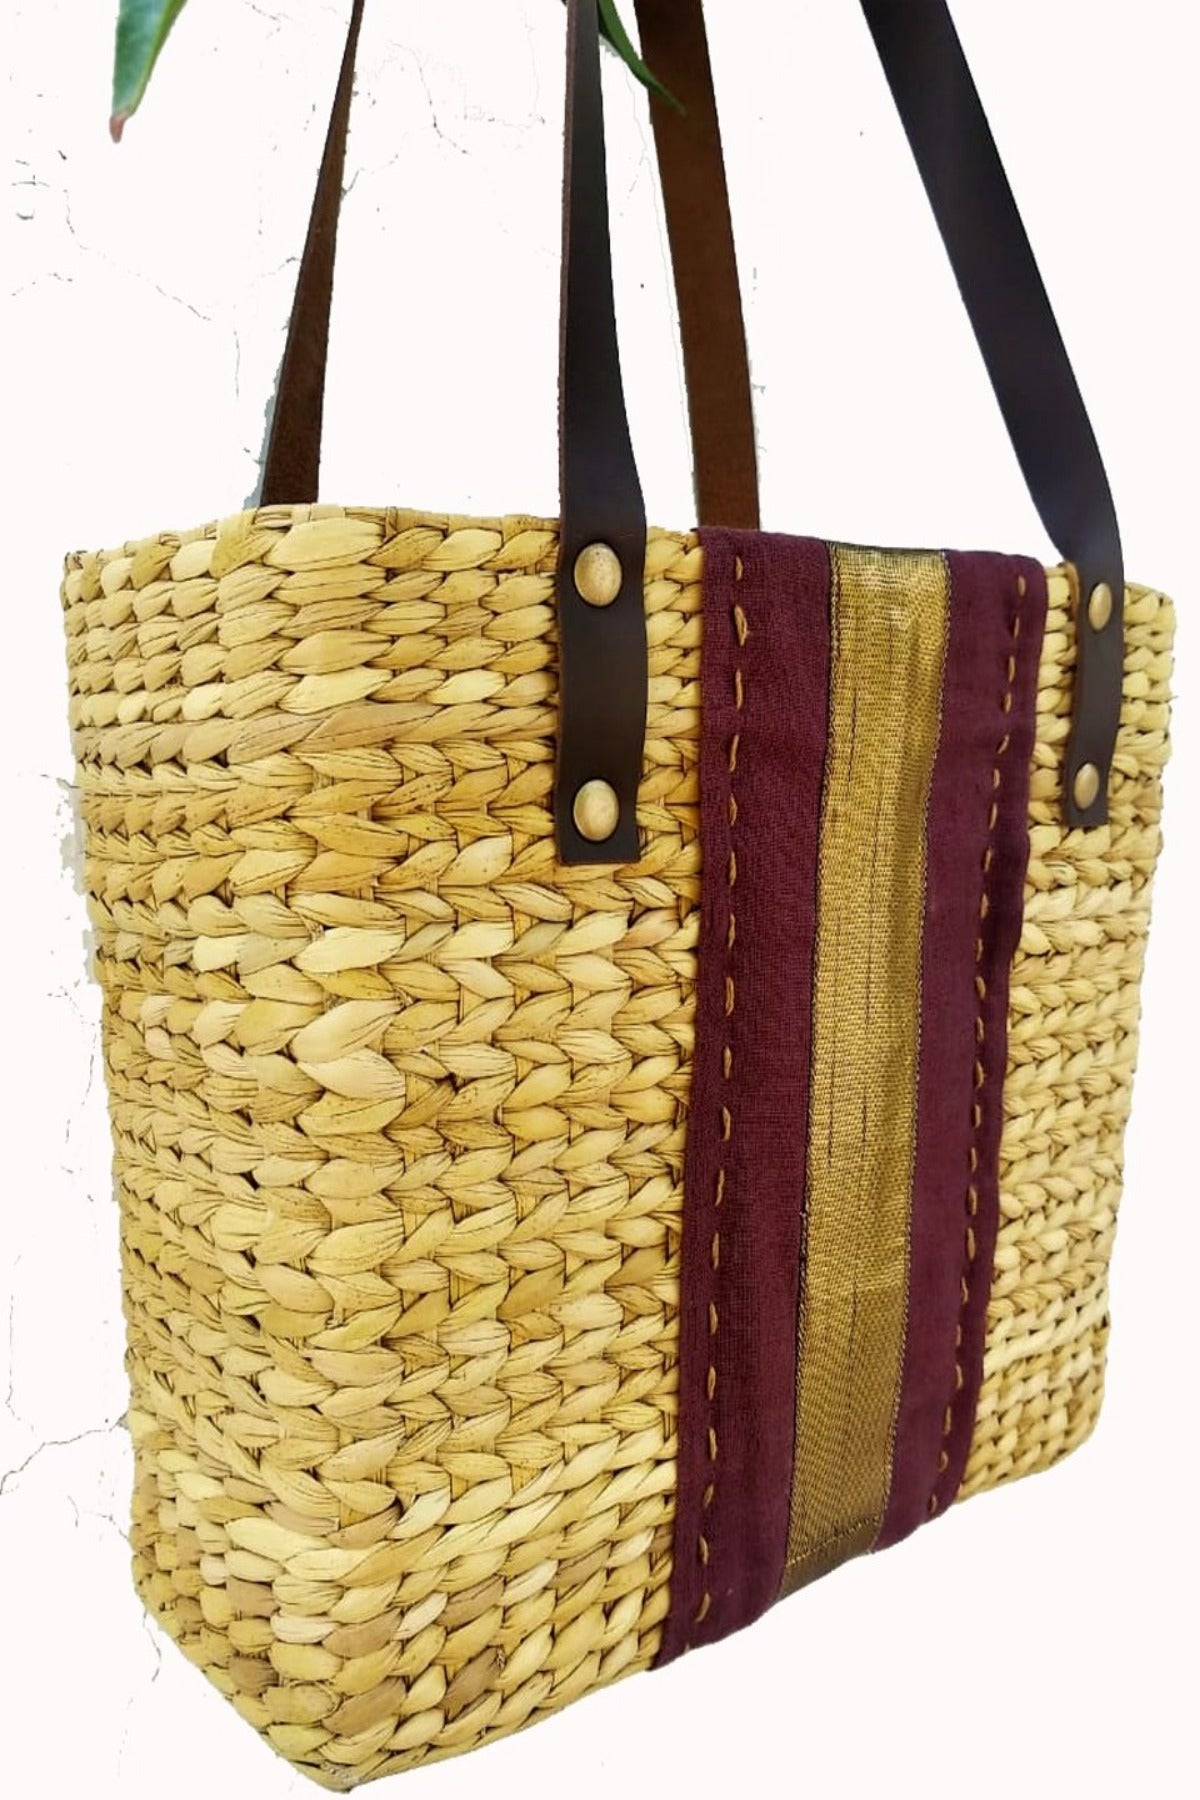 The Sahra Cane Bag